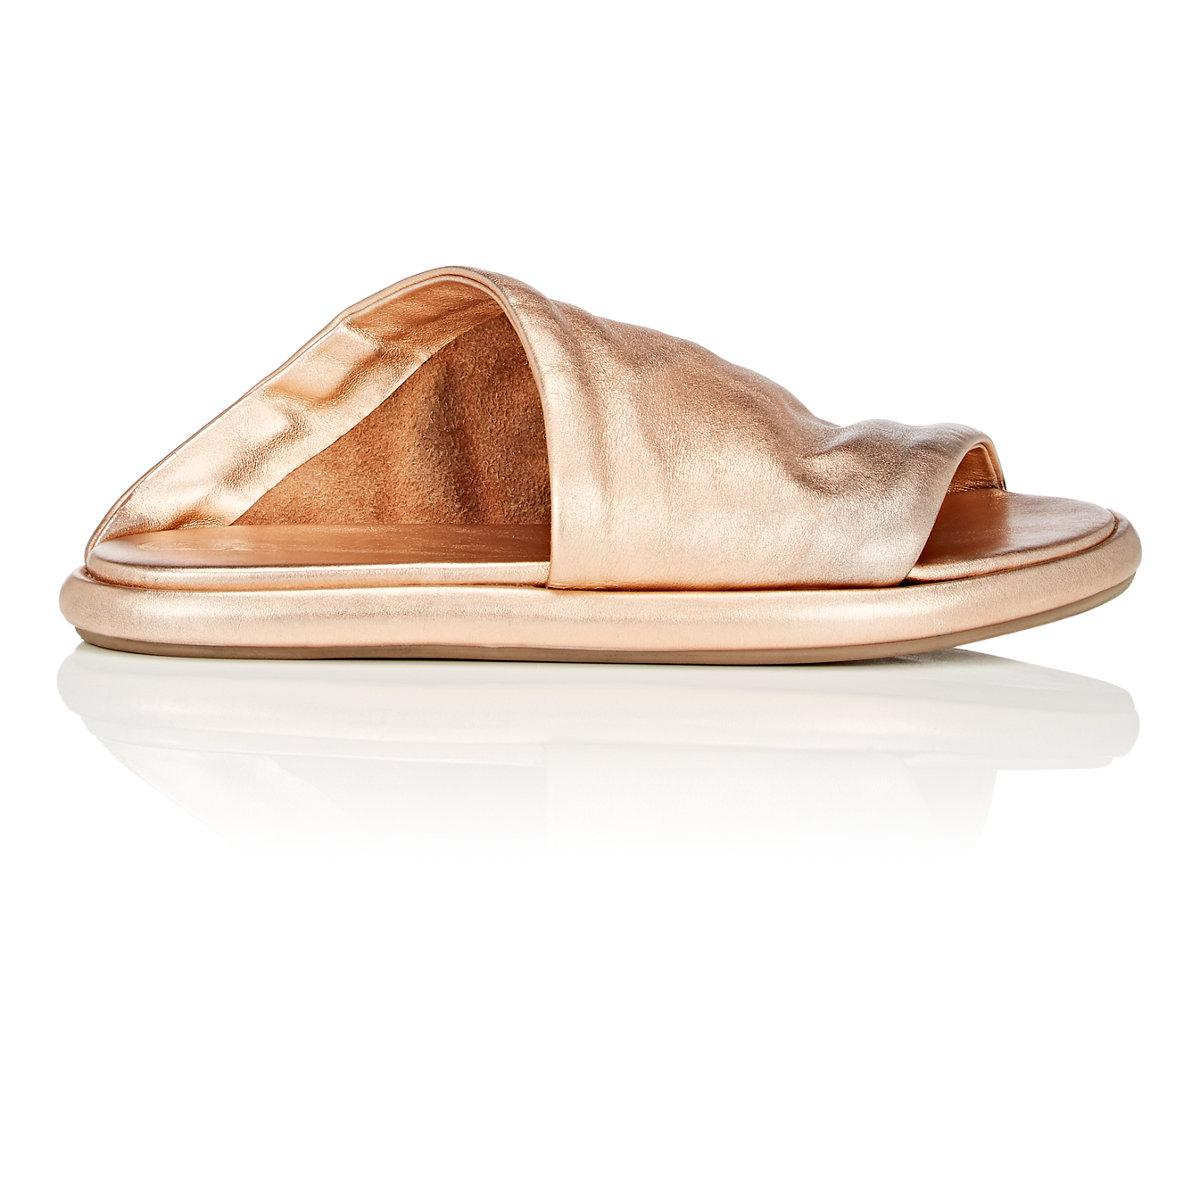 discount sast authentic for sale Marsèll Metallic Slide Sandals outlet clearance store new styles cheap online T1BKDQ3